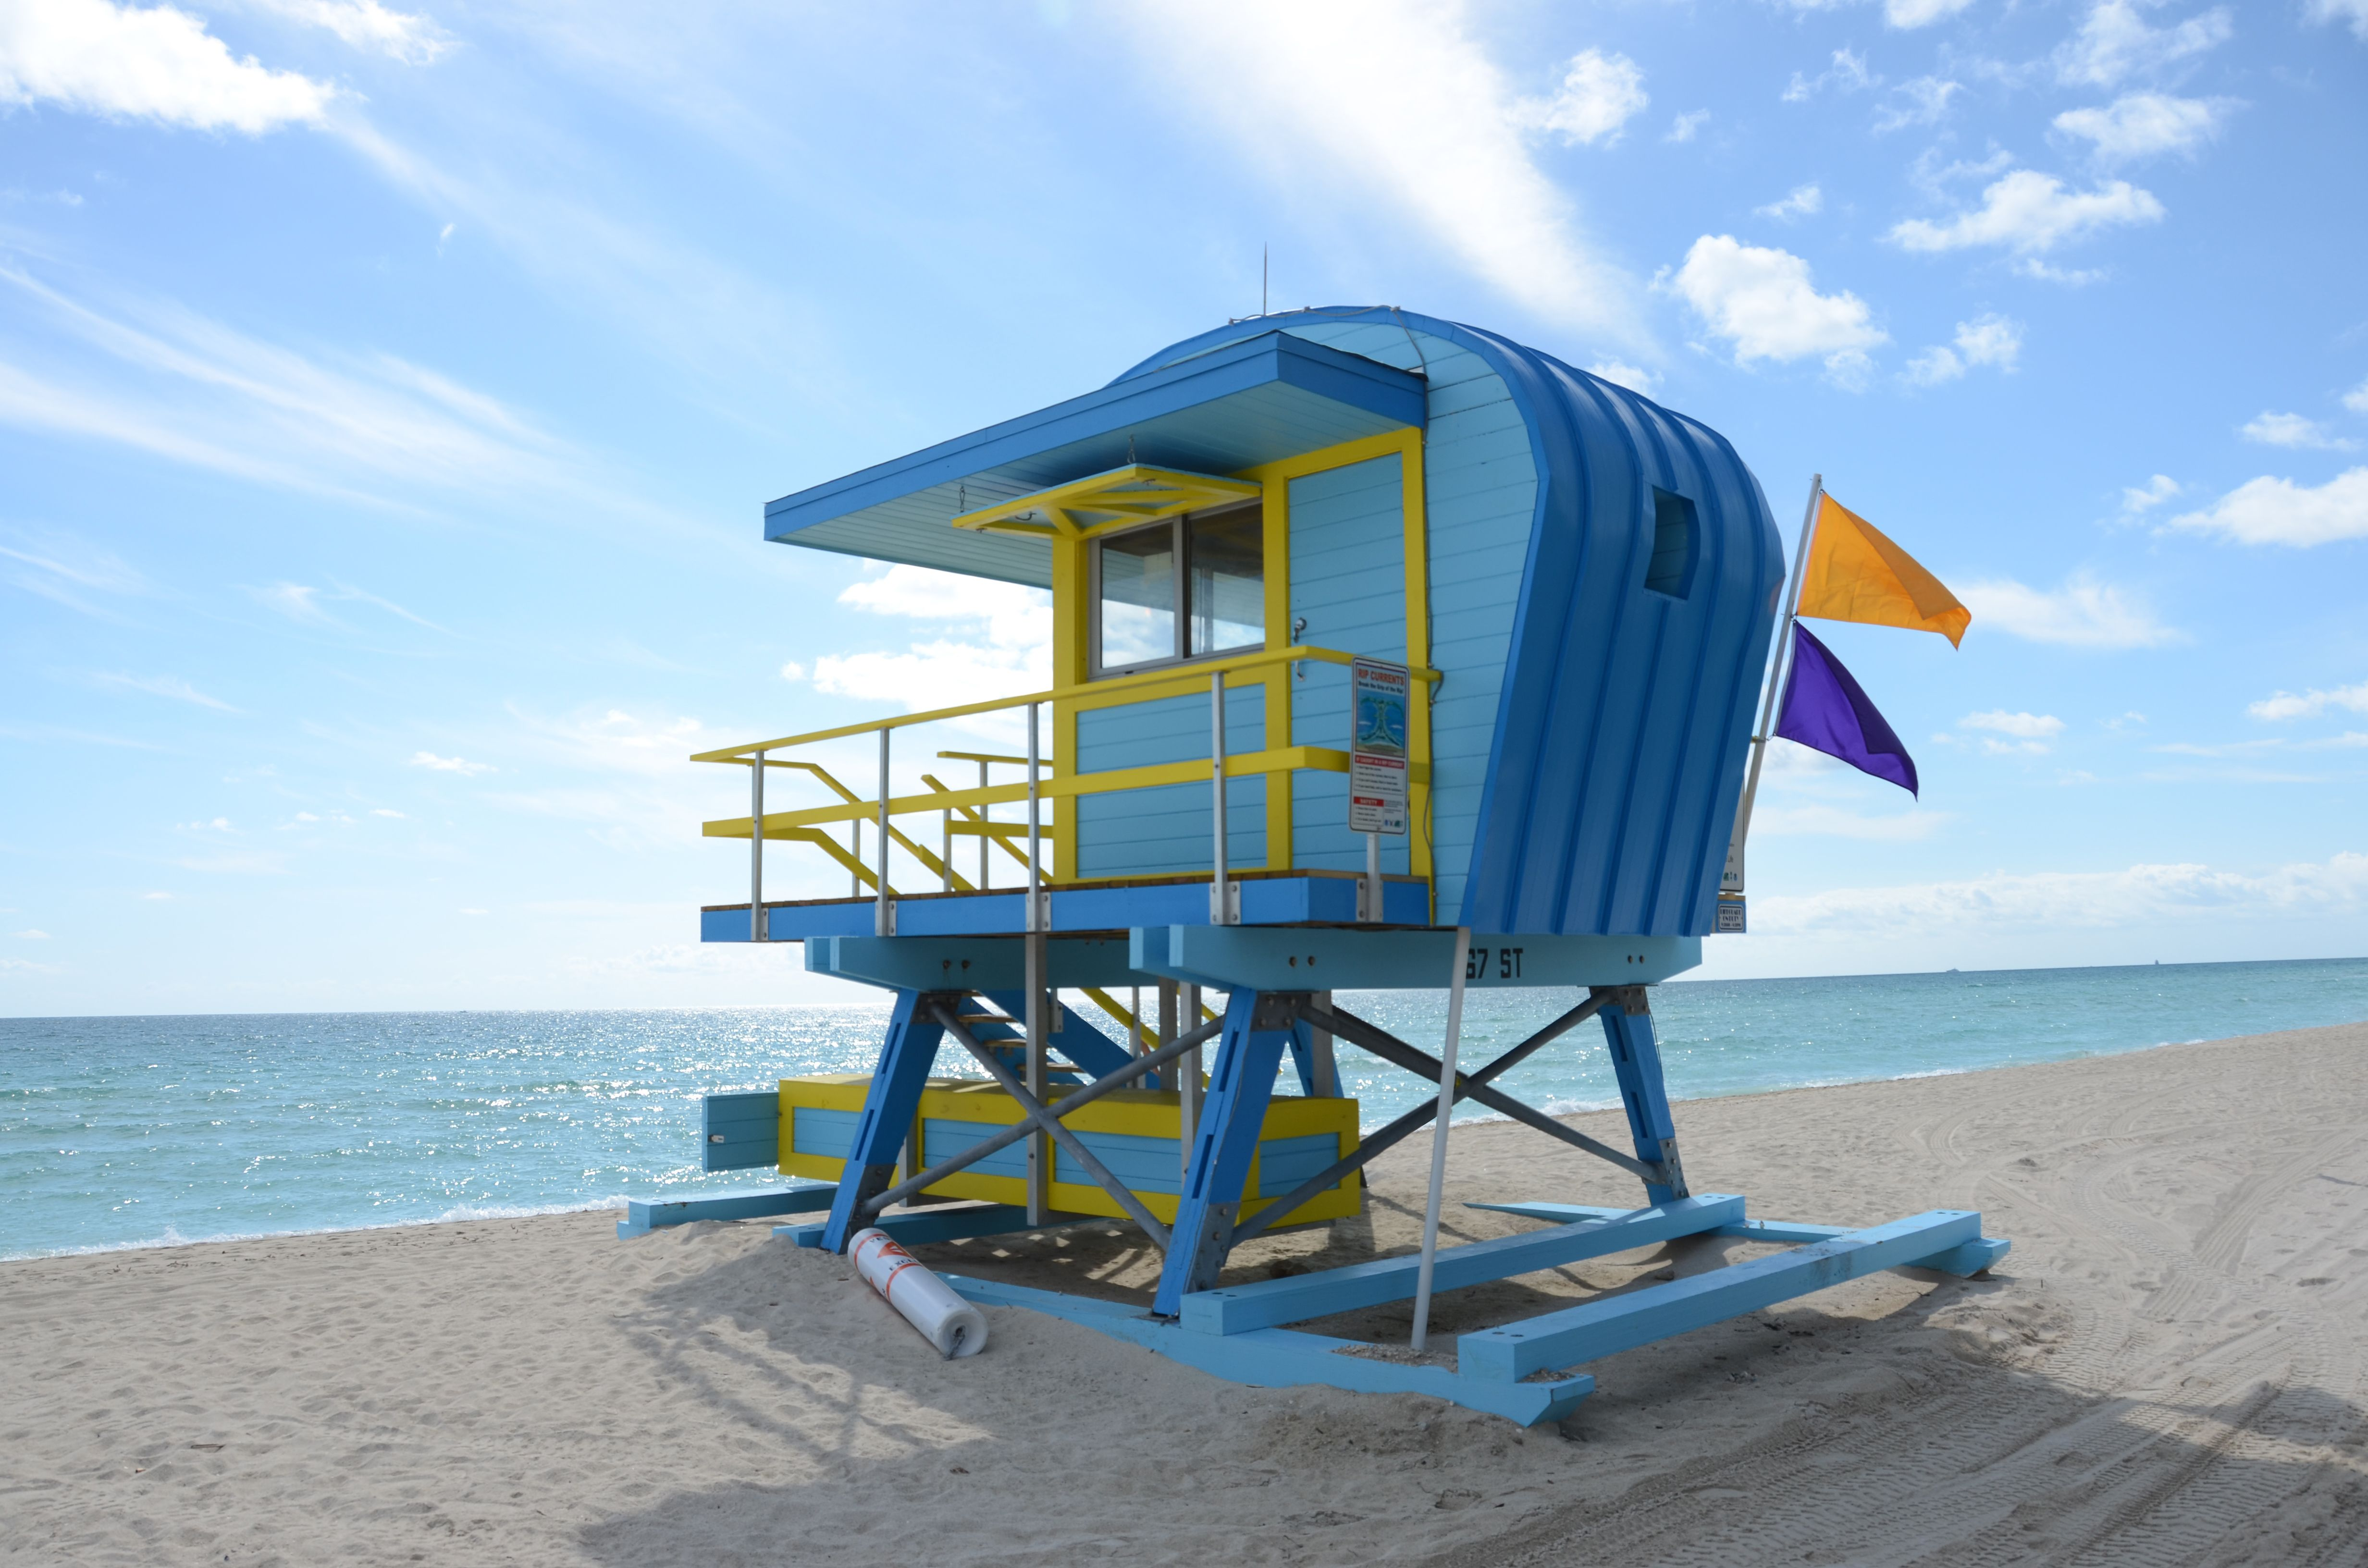 William Lane Lifeguard Stand on Miami Beach at 67th St